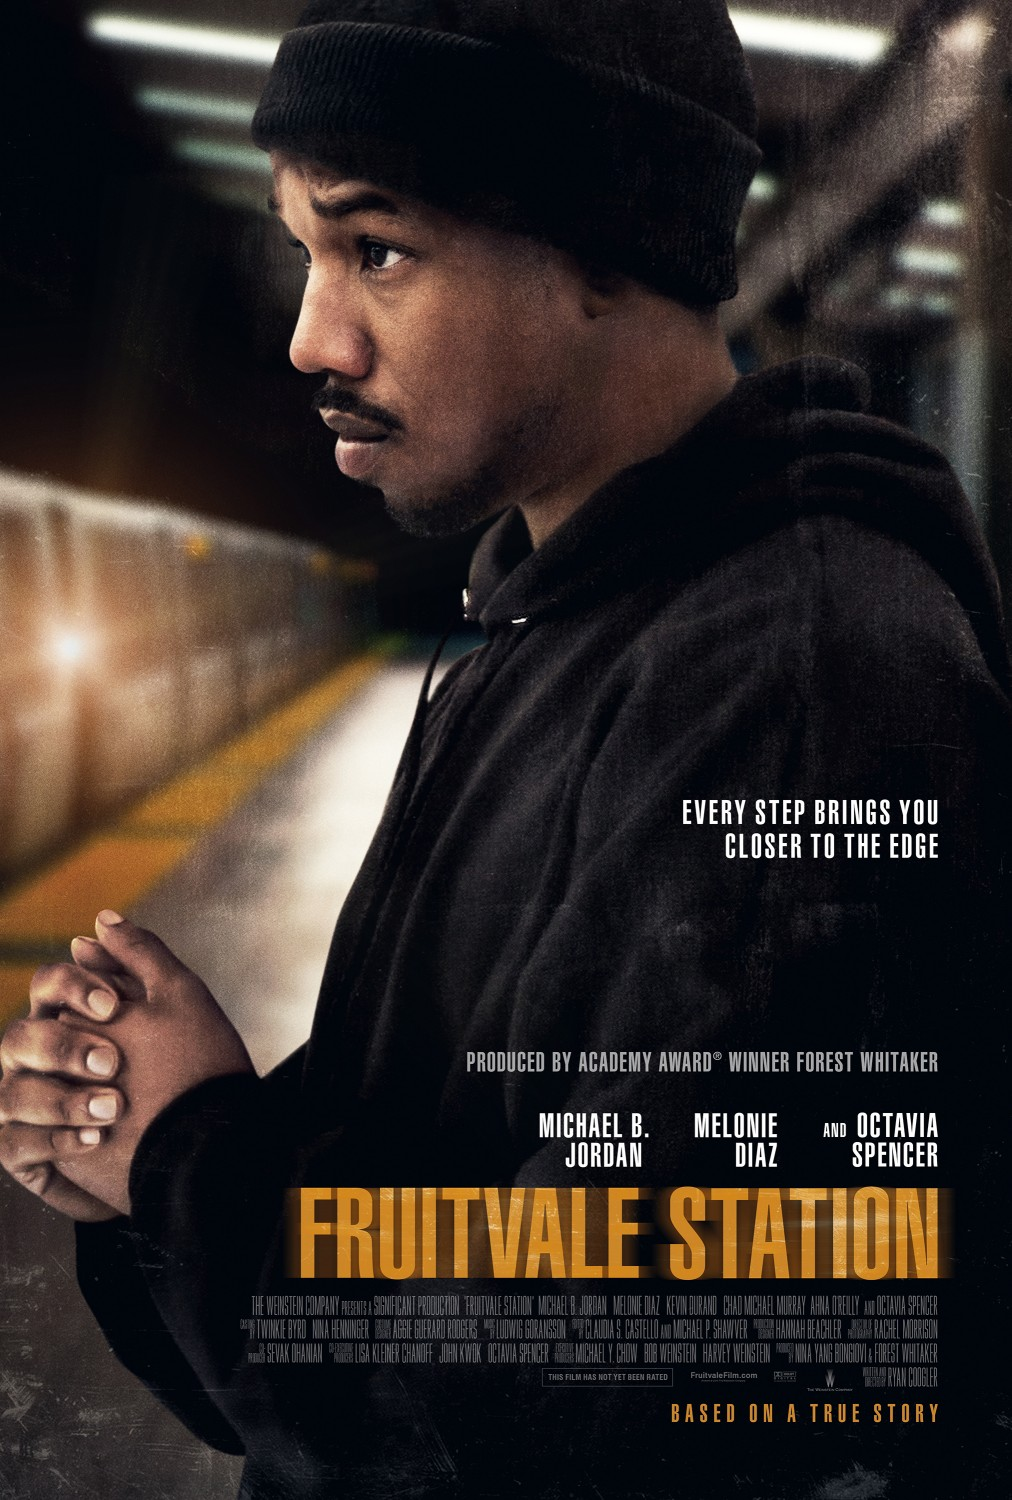 https://i0.wp.com/www.impawards.com/2013/posters/fruitvale_station_ver2_xlg.jpg